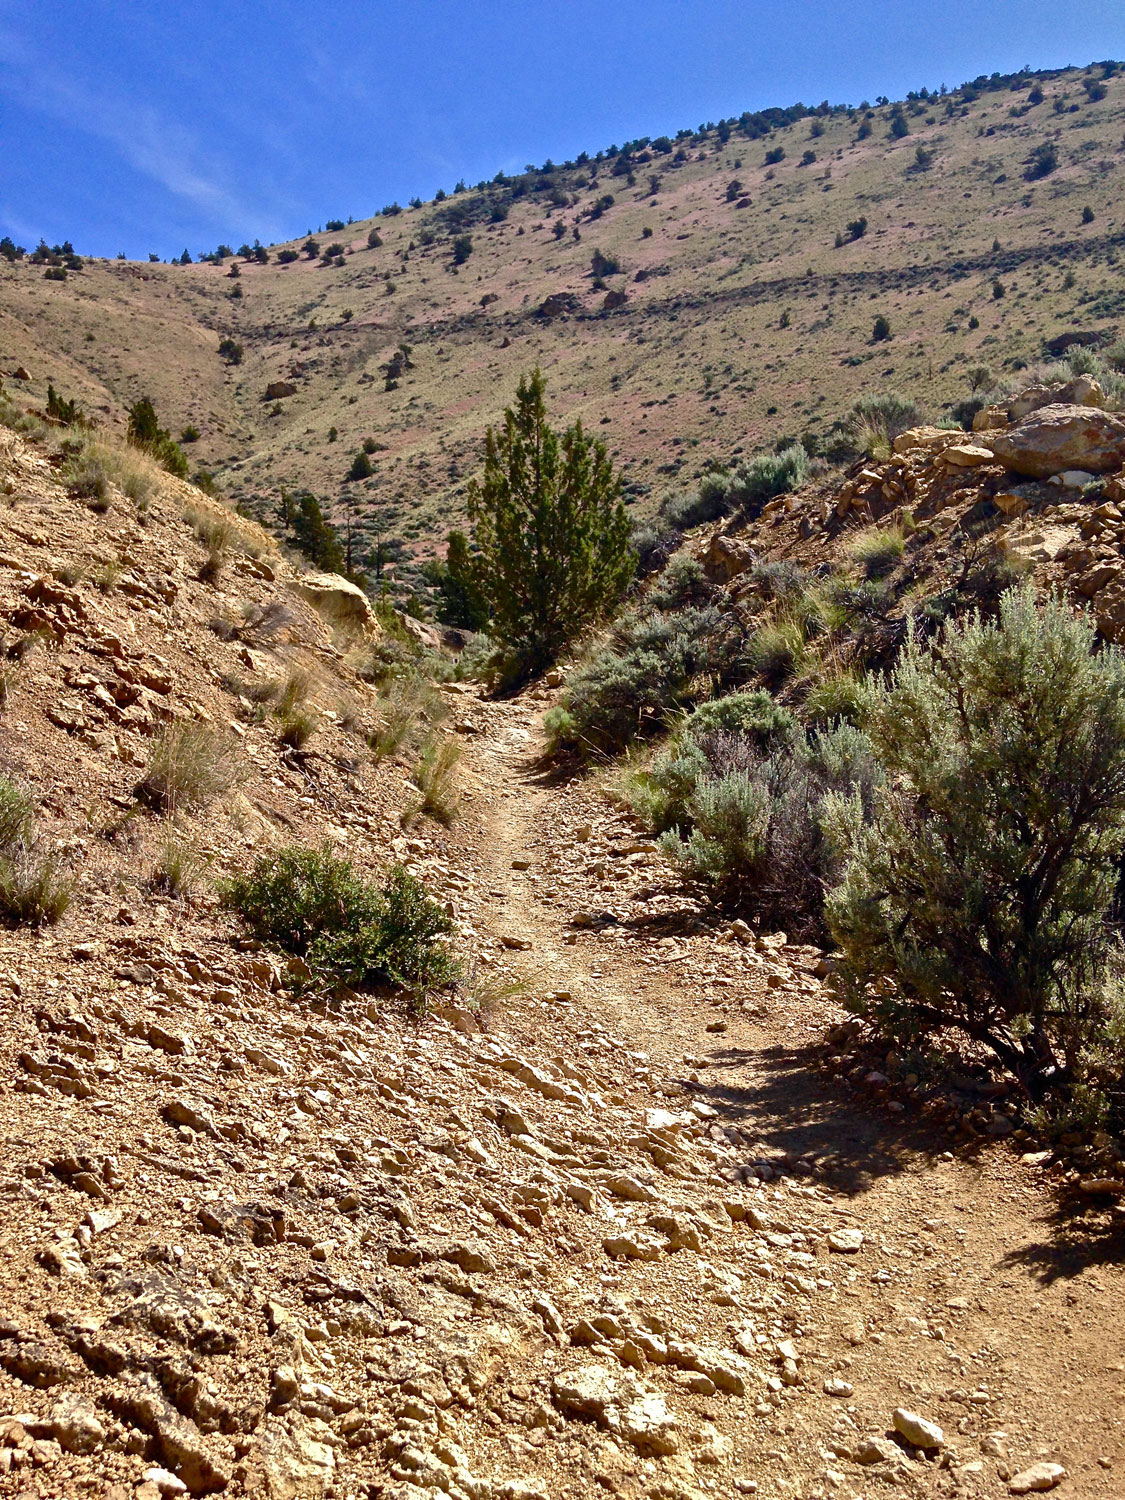 More steep scree signals the end to the narrow Burma Road Trail still in Smith Rock State Park boundaries.